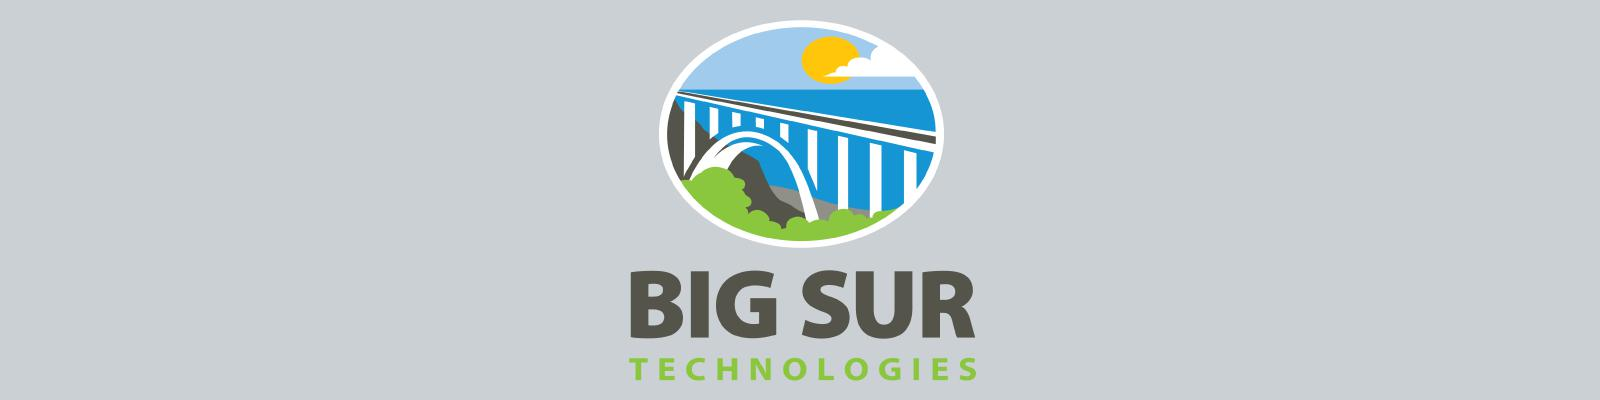 Big Sur Utilized Datto's Private Cloud in a Big Way